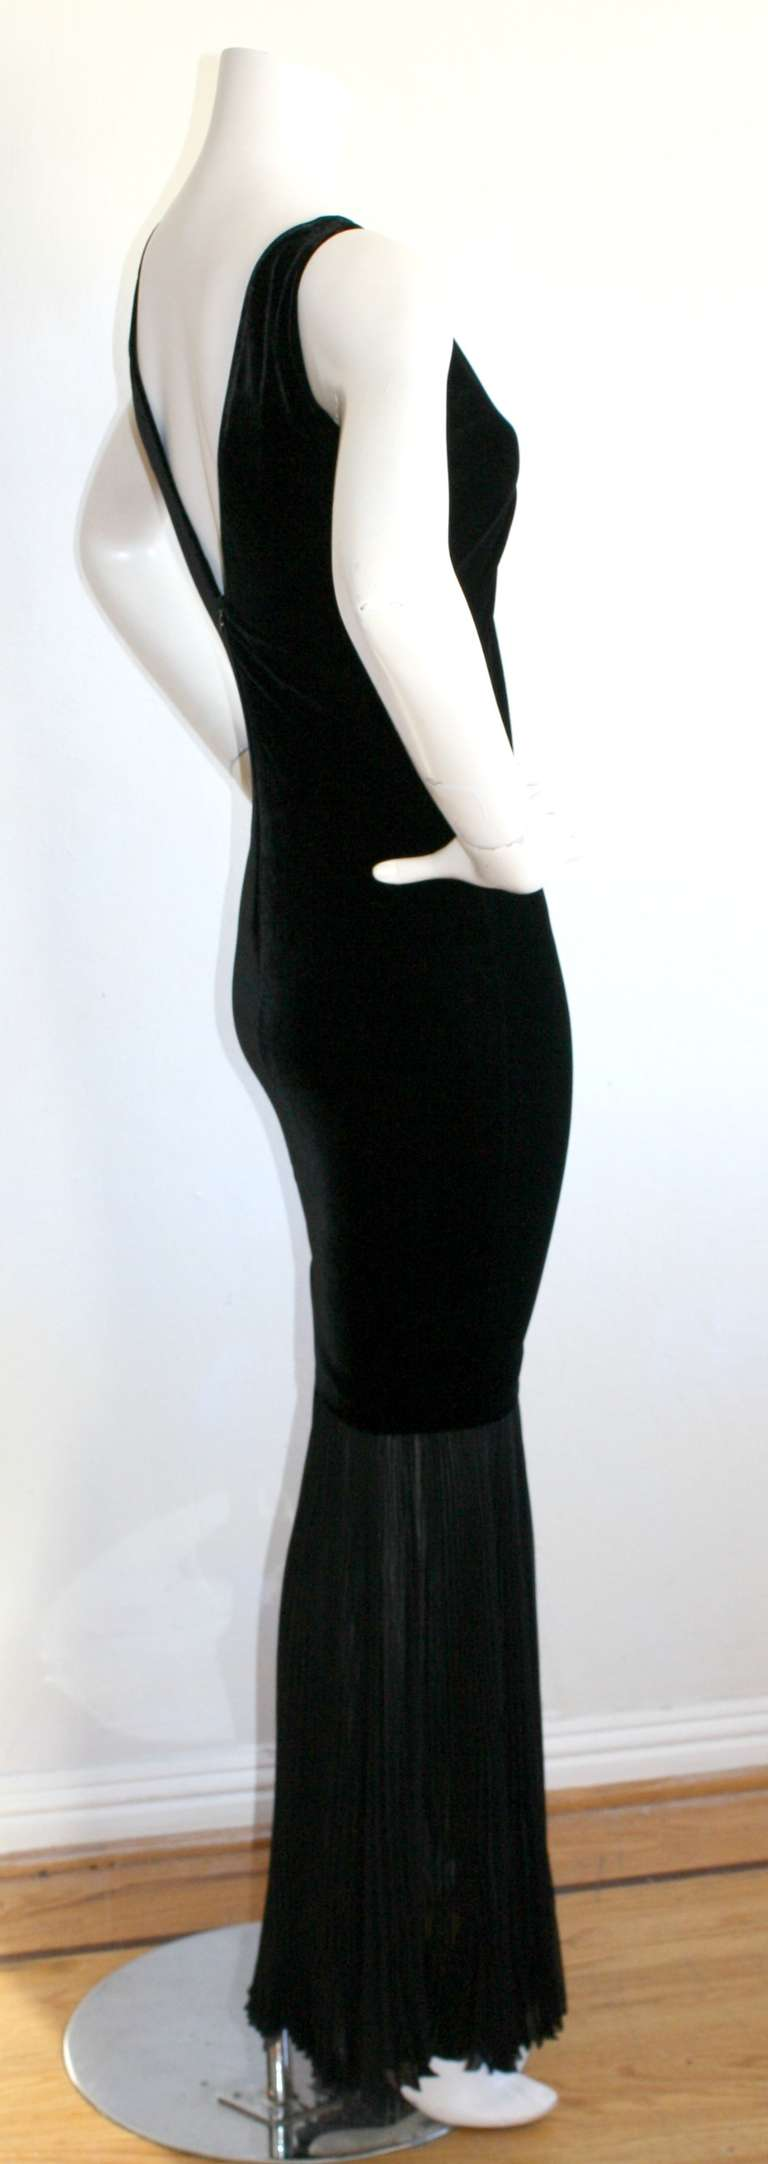 Jean Paul Gaultier Vintage Black Velvet Sexy Mermaid Fishtail Gown 6